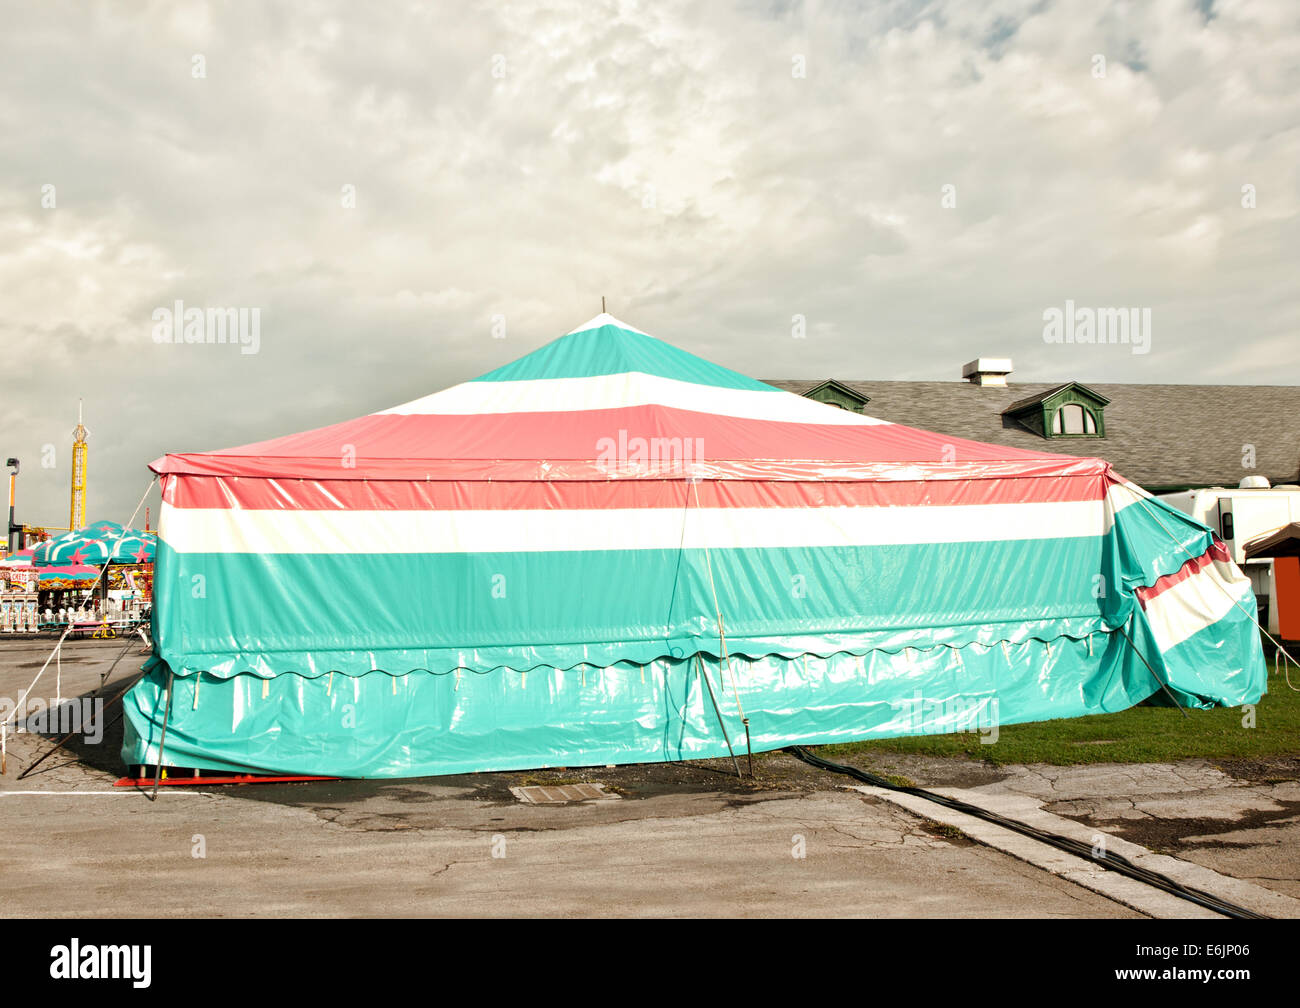 circus tent style covering for vendors and games of chance booths at a fair & circus tent style covering for vendors and games of chance booths ...